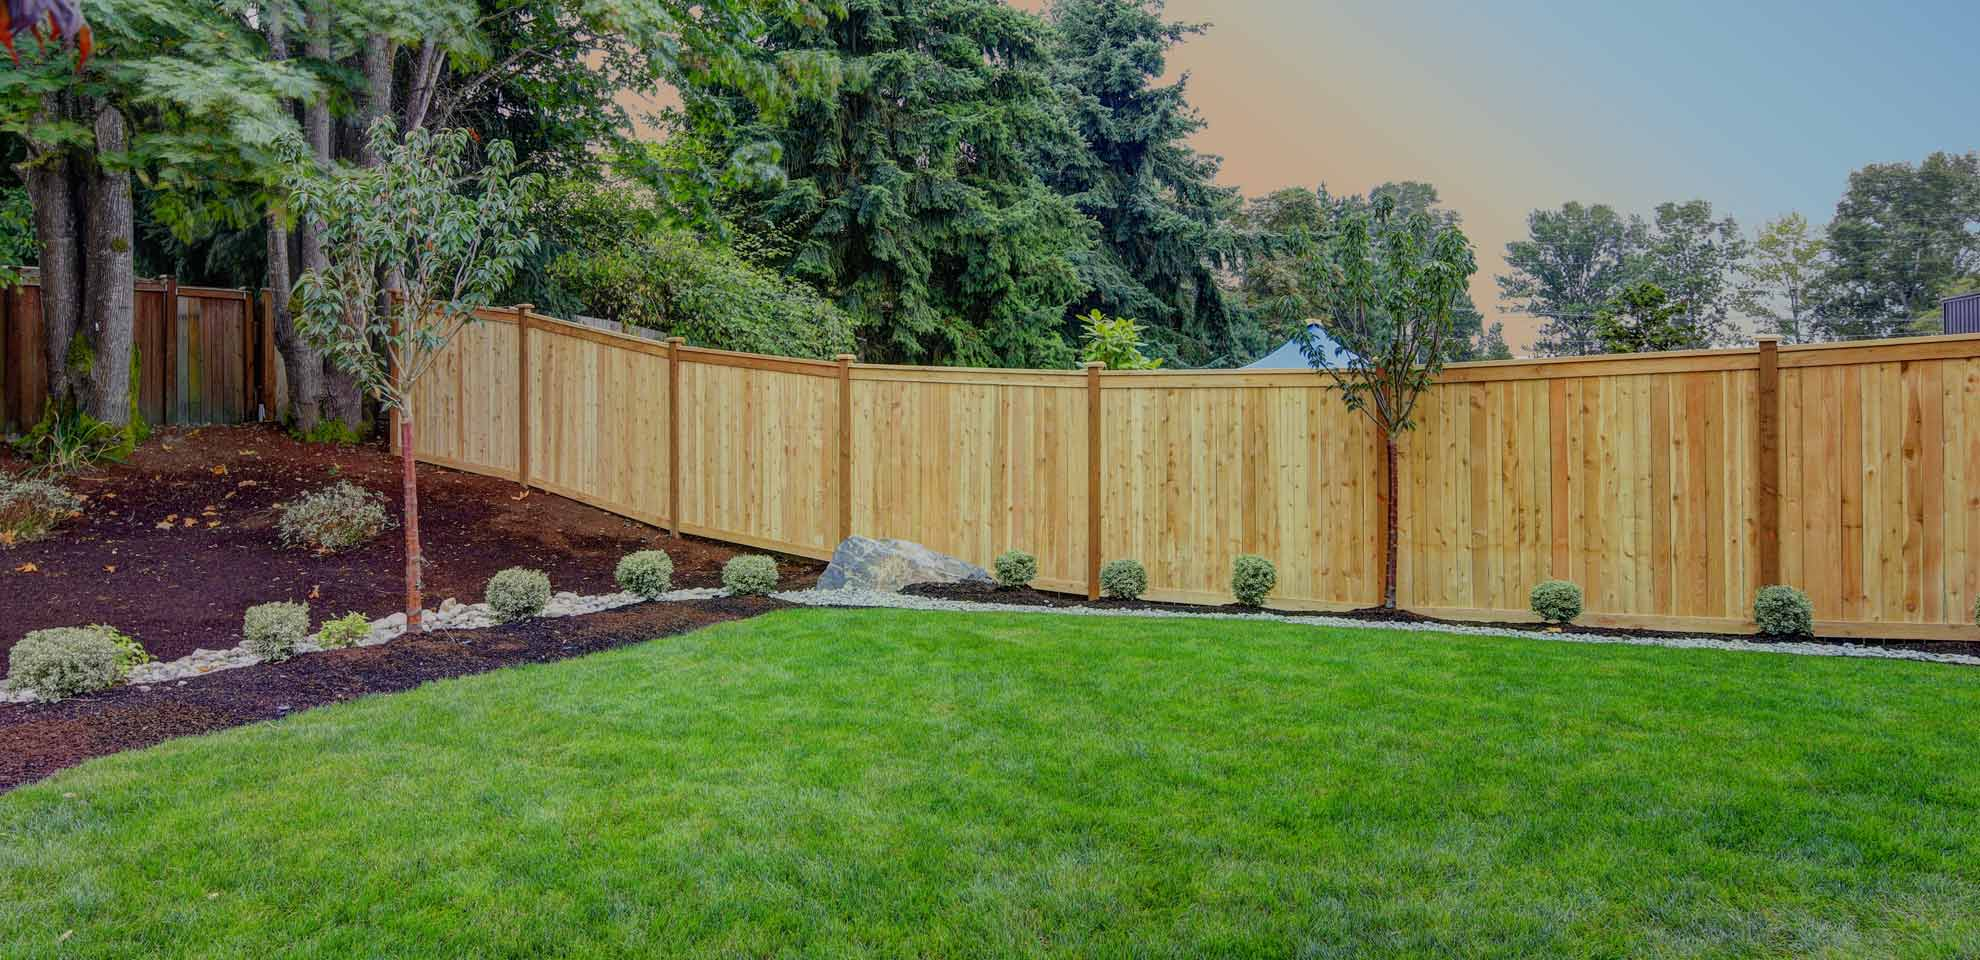 Outdoor Home Improvement Ottawa On Fence All